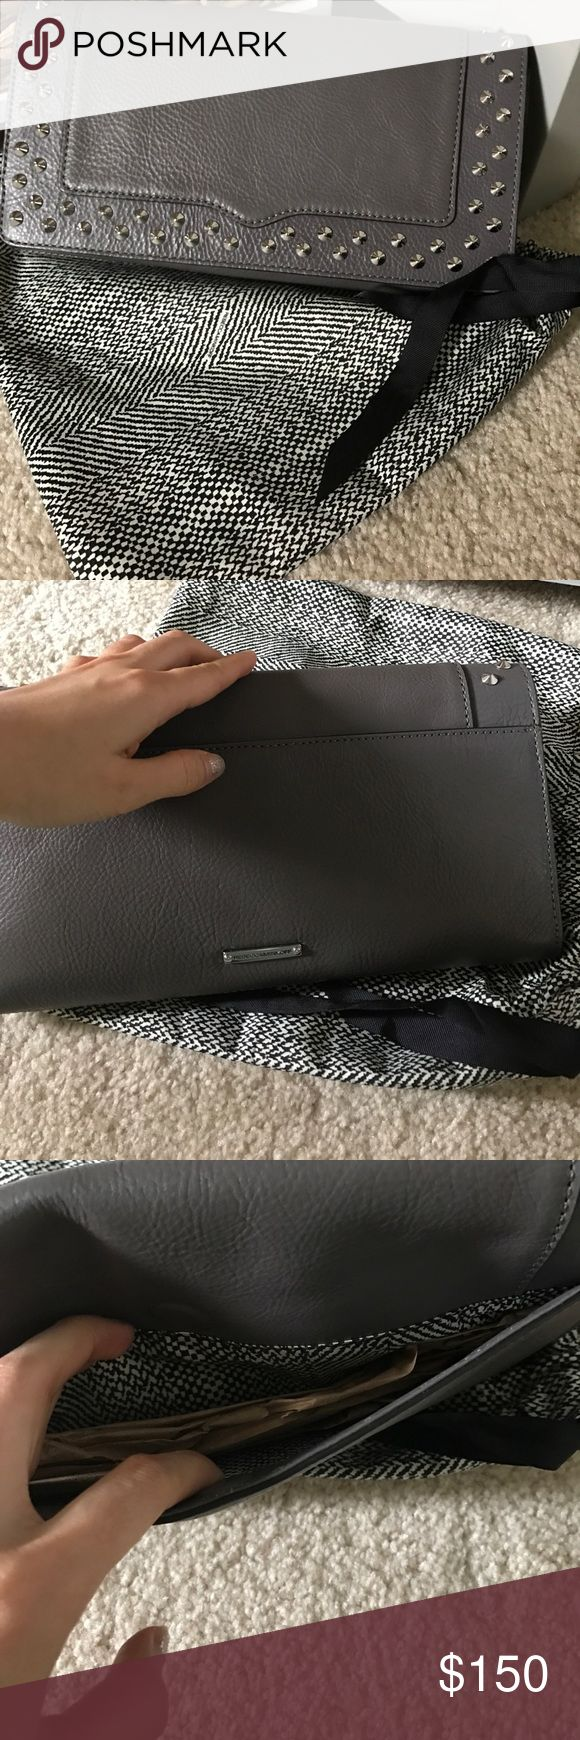 Nwt rebecca minkoff clutch 👛 Beautiful. Easy to match with night out outfit or evening gown. Still selling at Nordstrom for $265. Rebecca Minkoff Bags Clutches & Wristlets